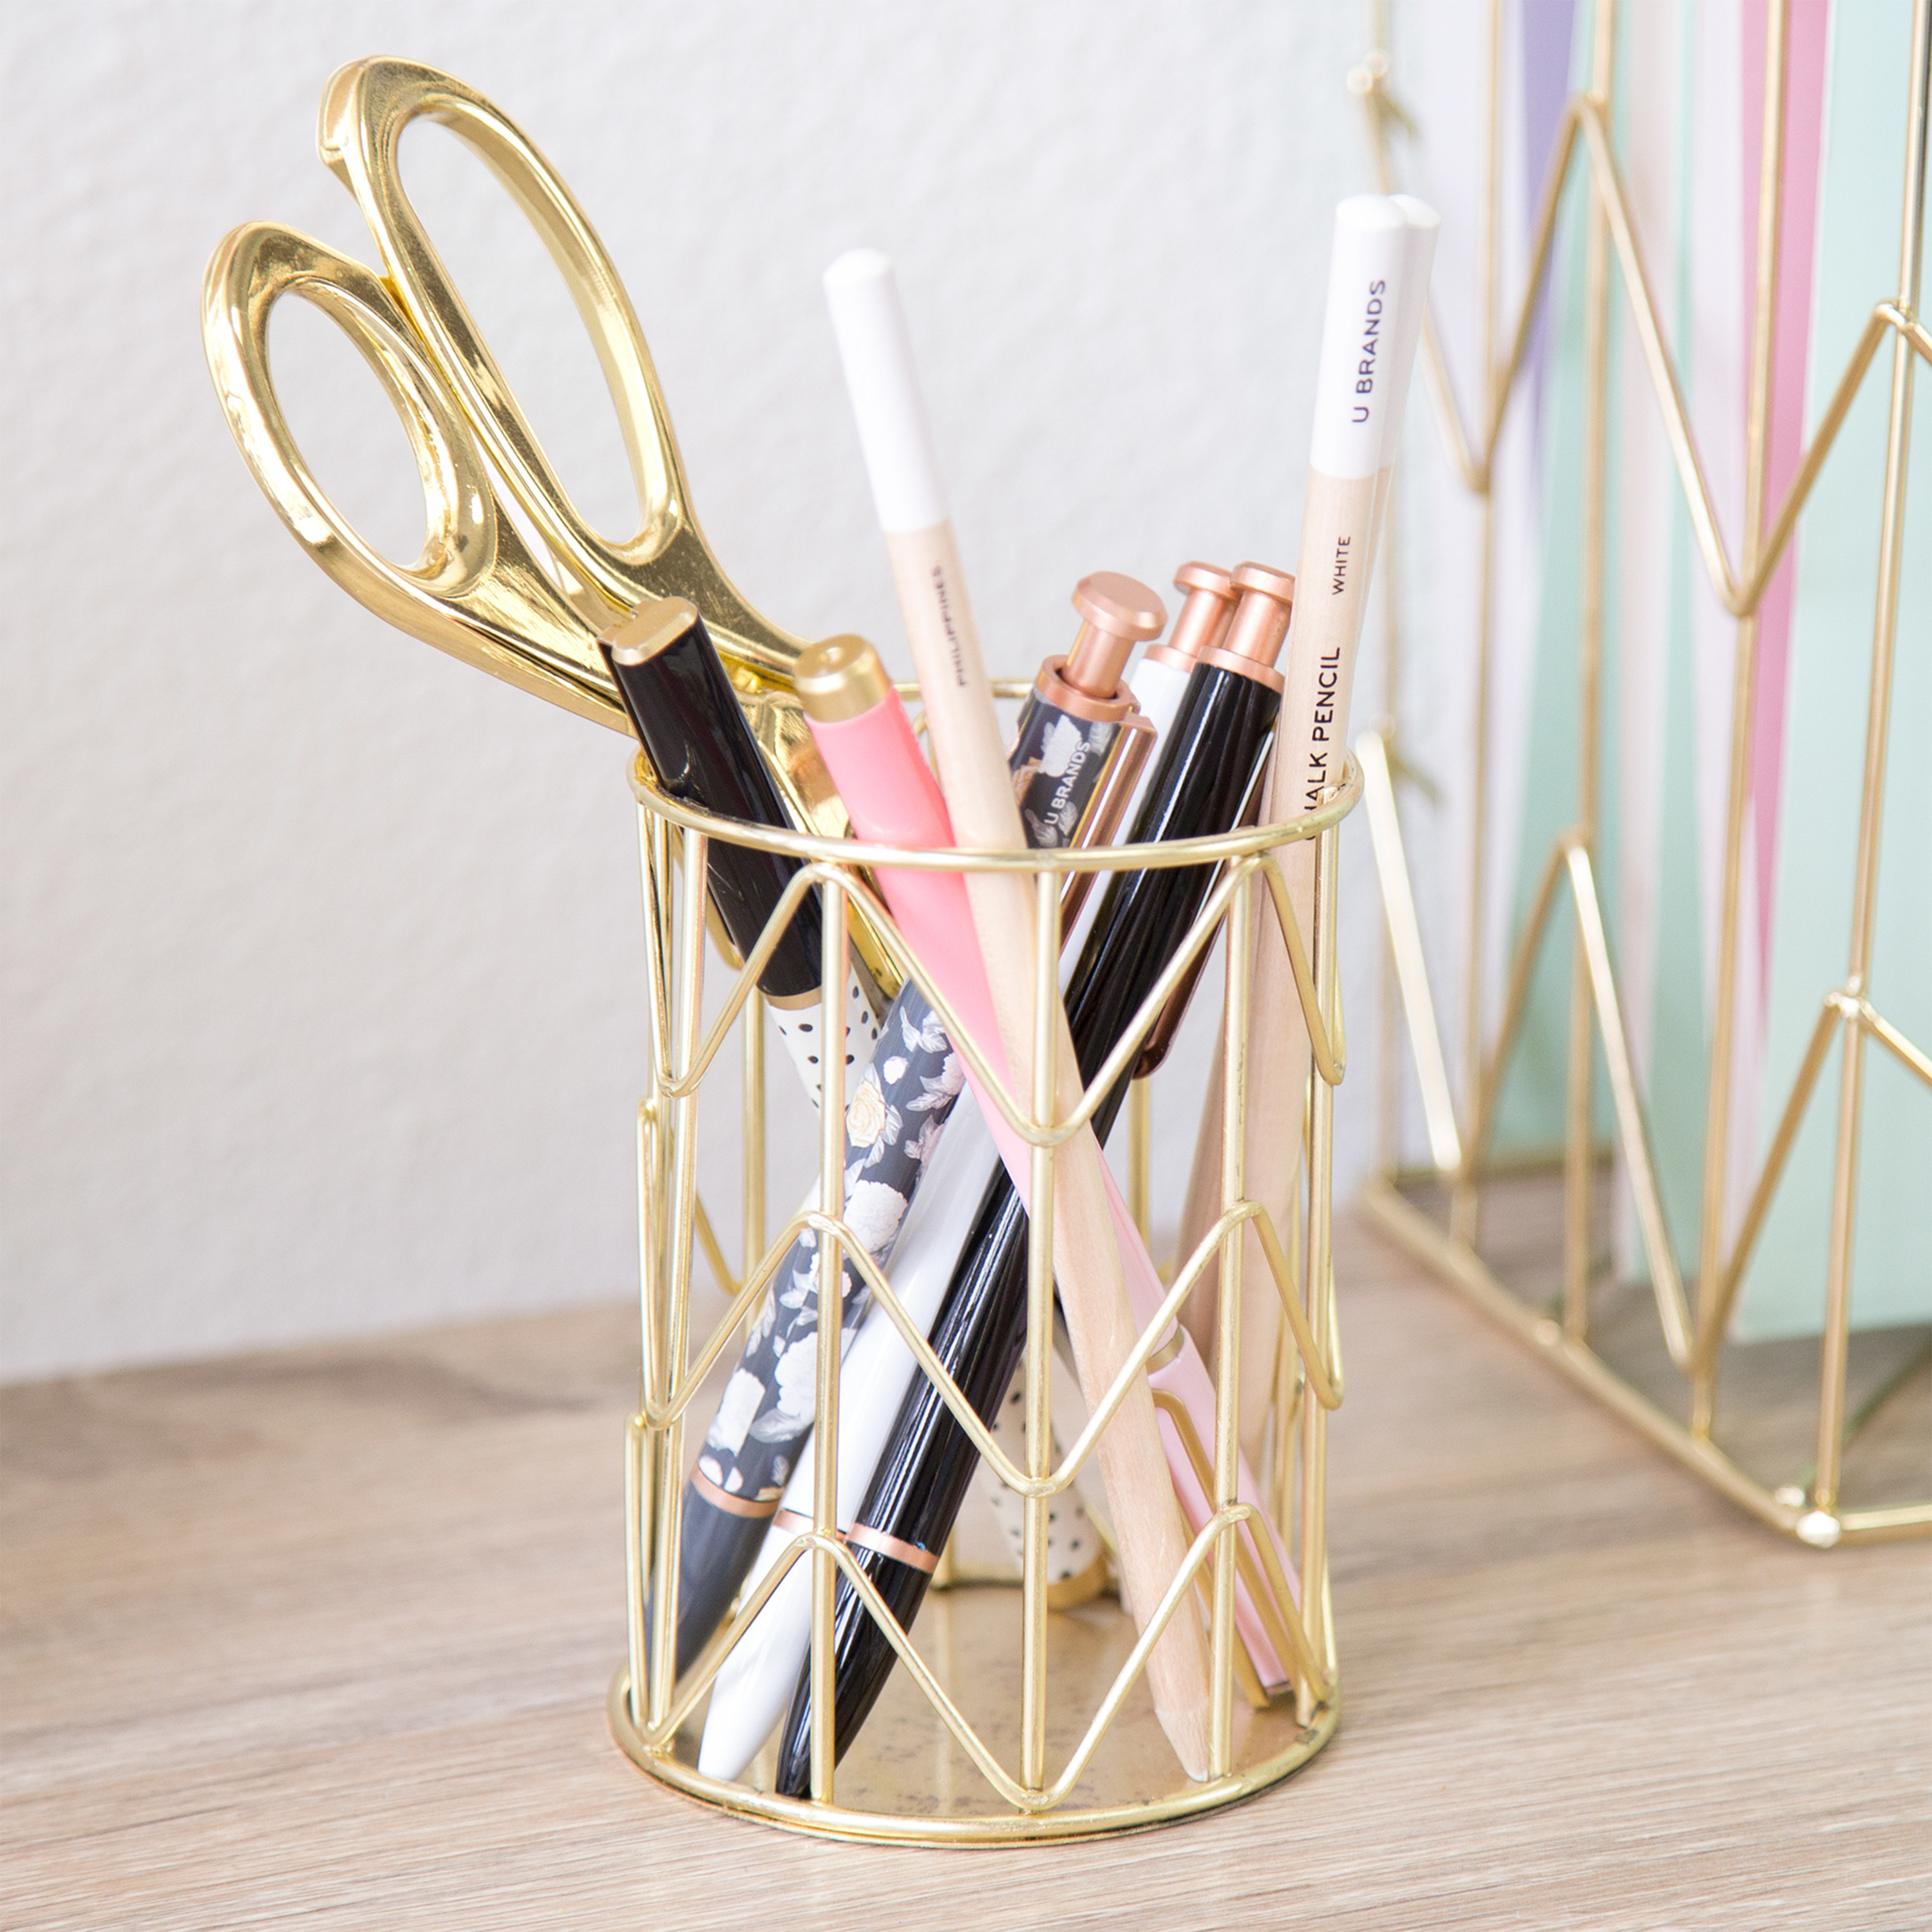 the pencil holder with office supplies in it